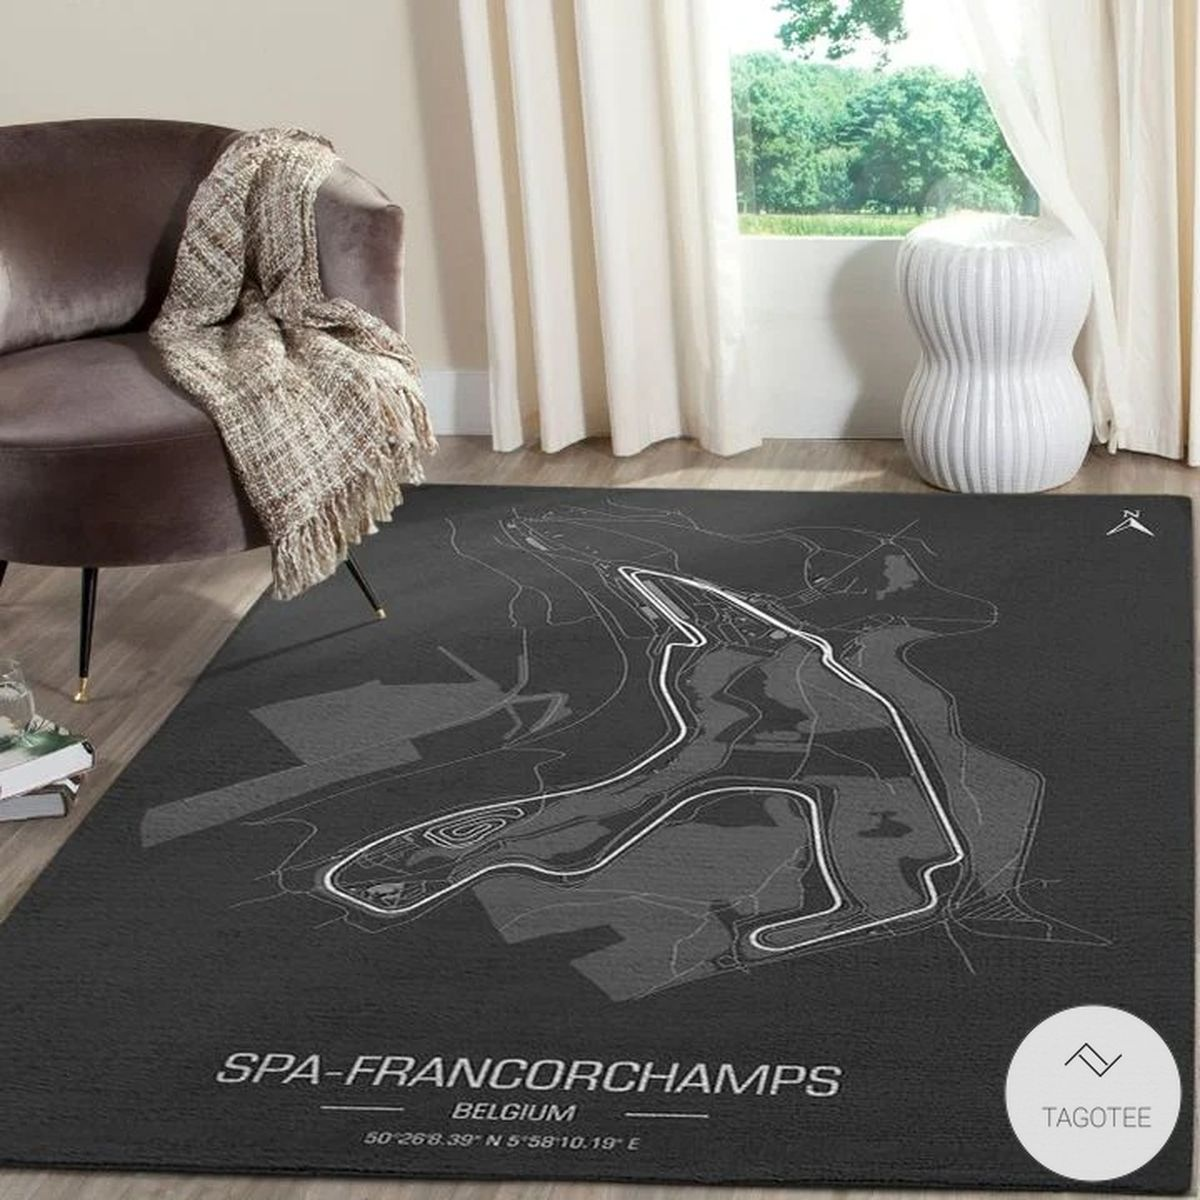 Spa-Francorchamps F1 Circuit Map Rug